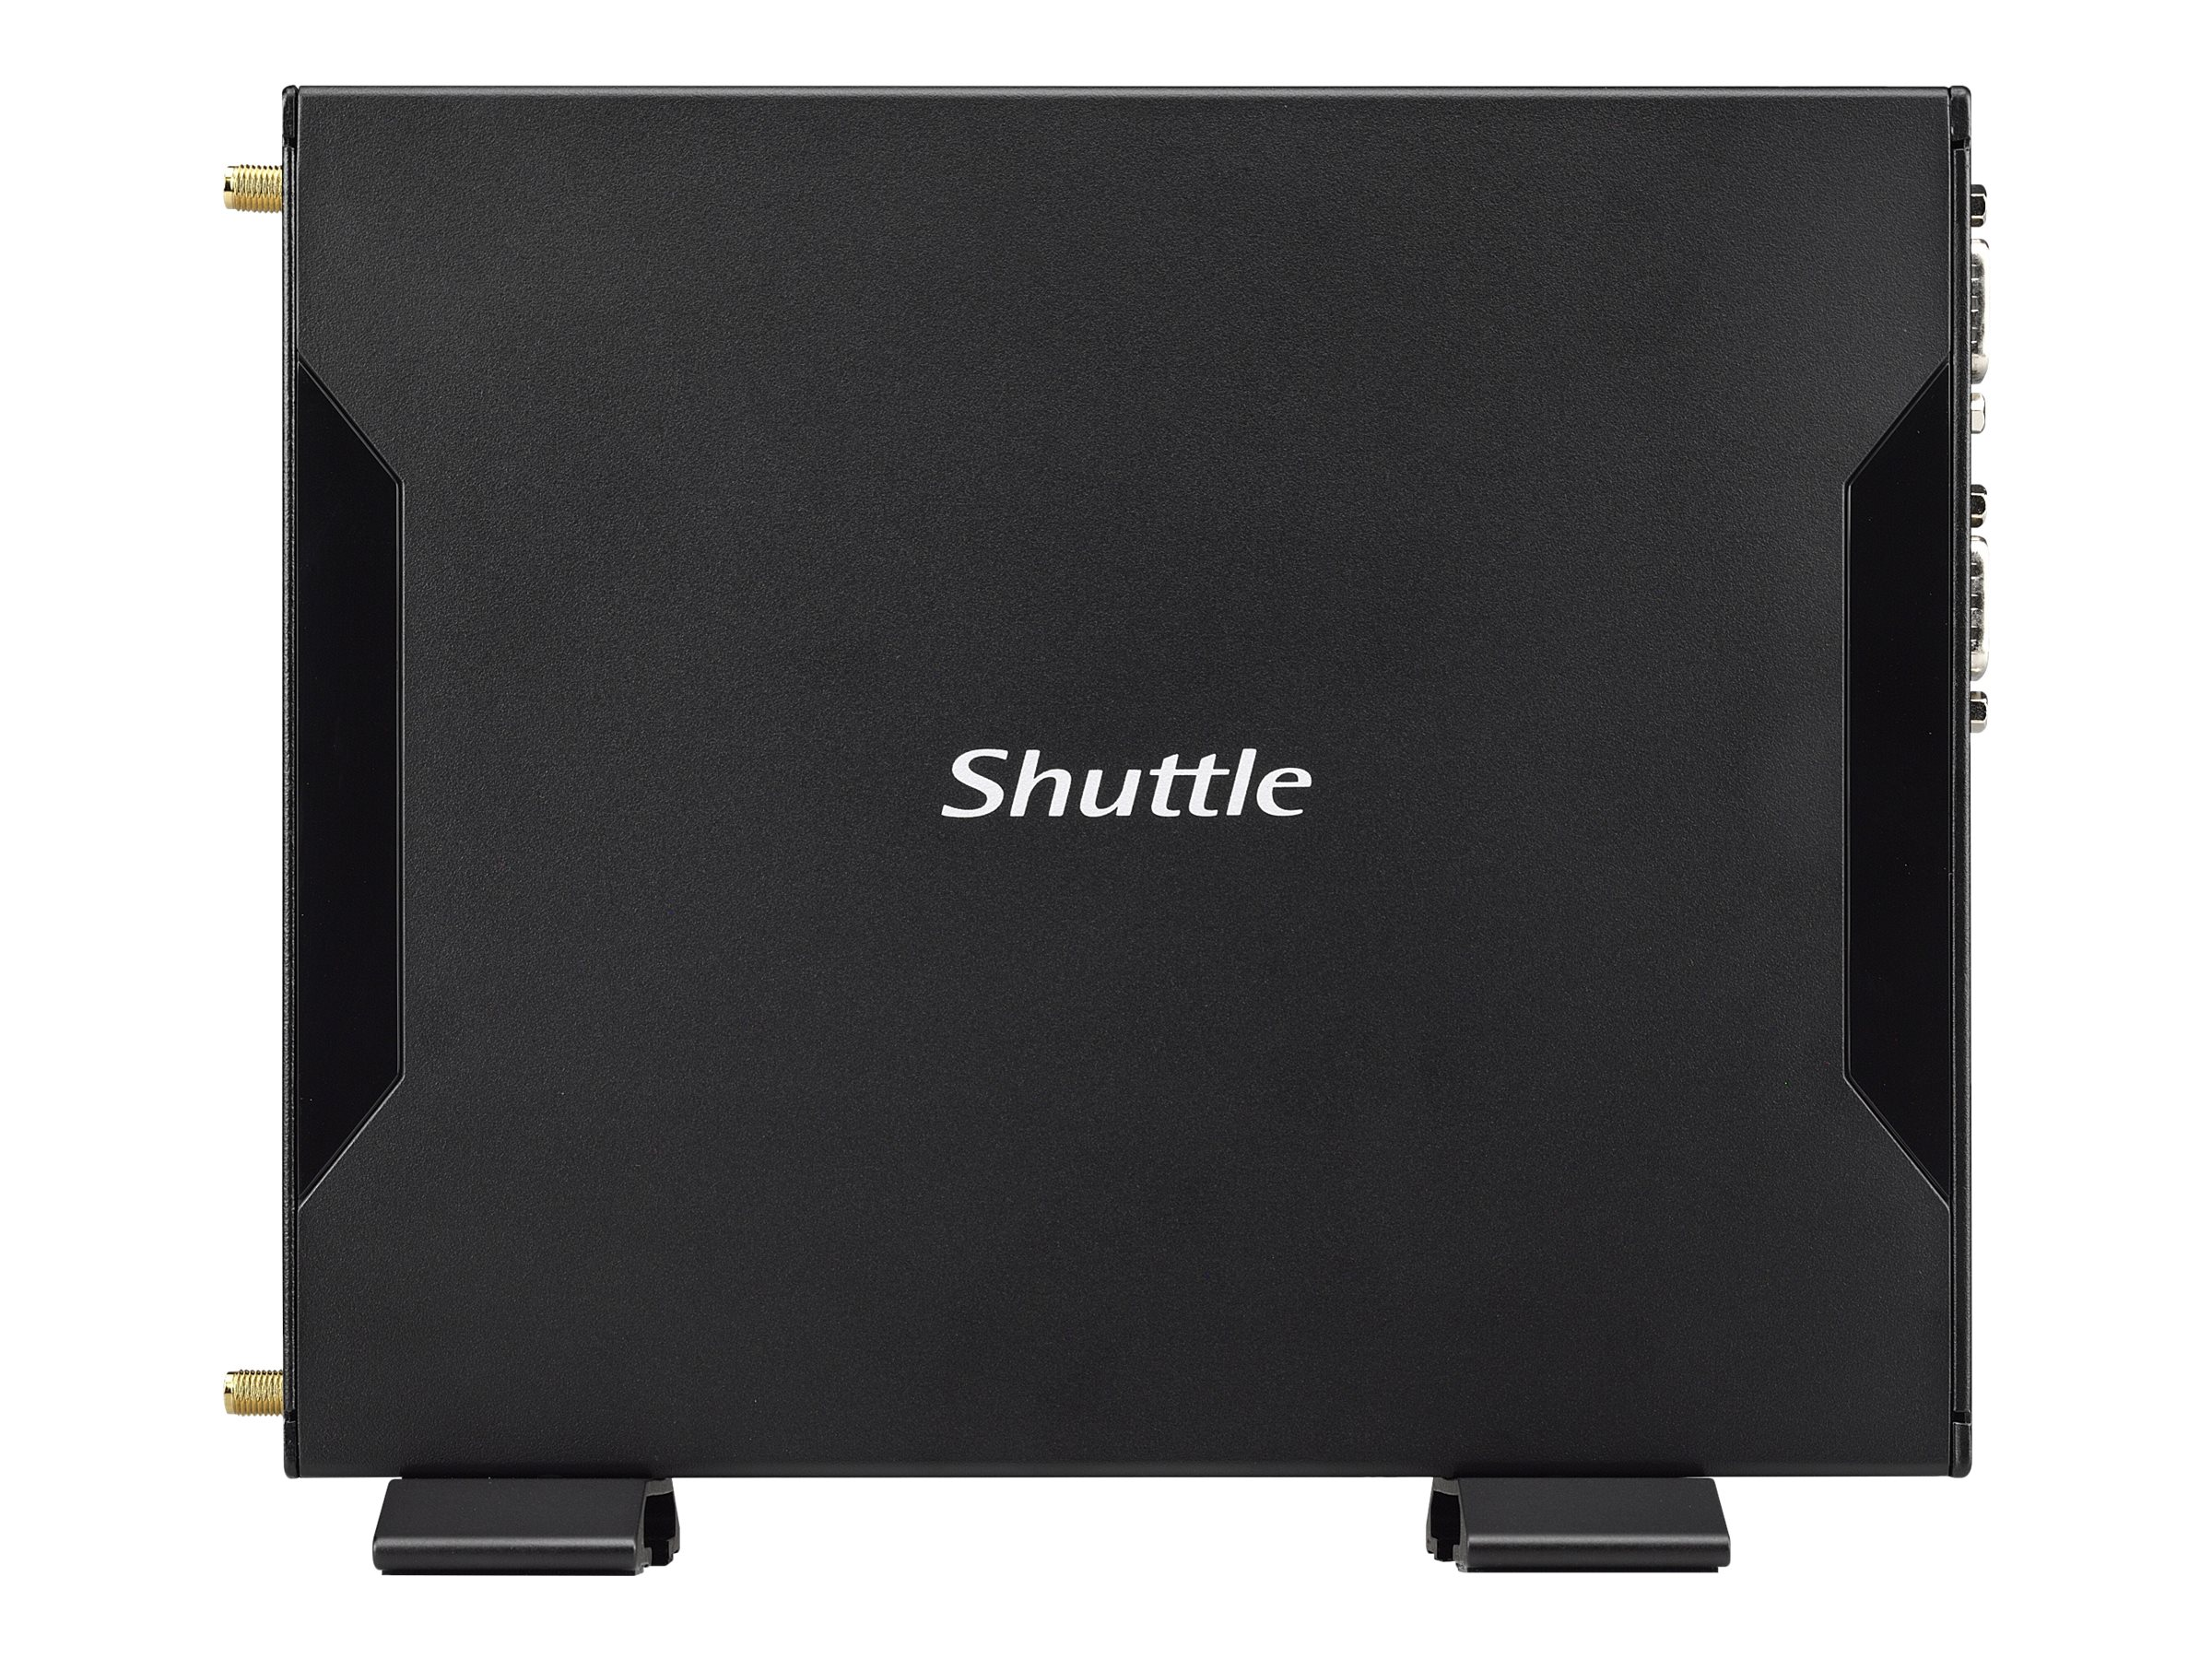 Shuttle Computer Group DS67U3 Image 5